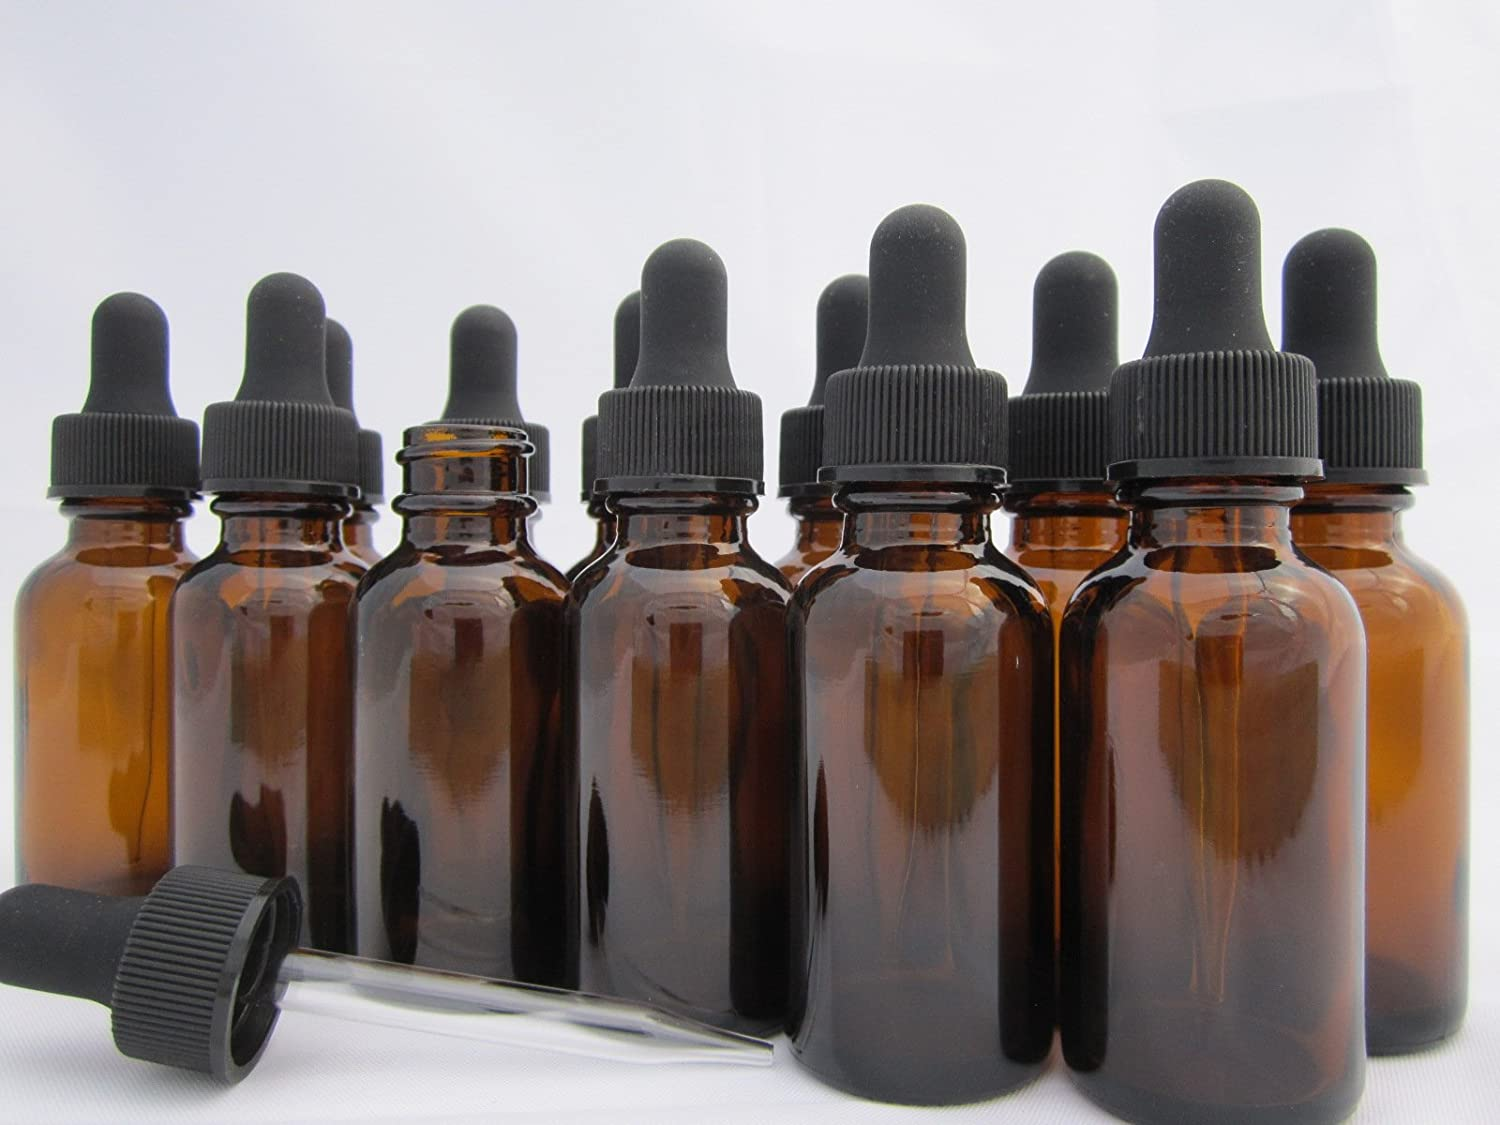 DropperStop 1oz Amber Glass Dropper Bottles (30mL) with Tapered Glass Droppers - Pack of 12